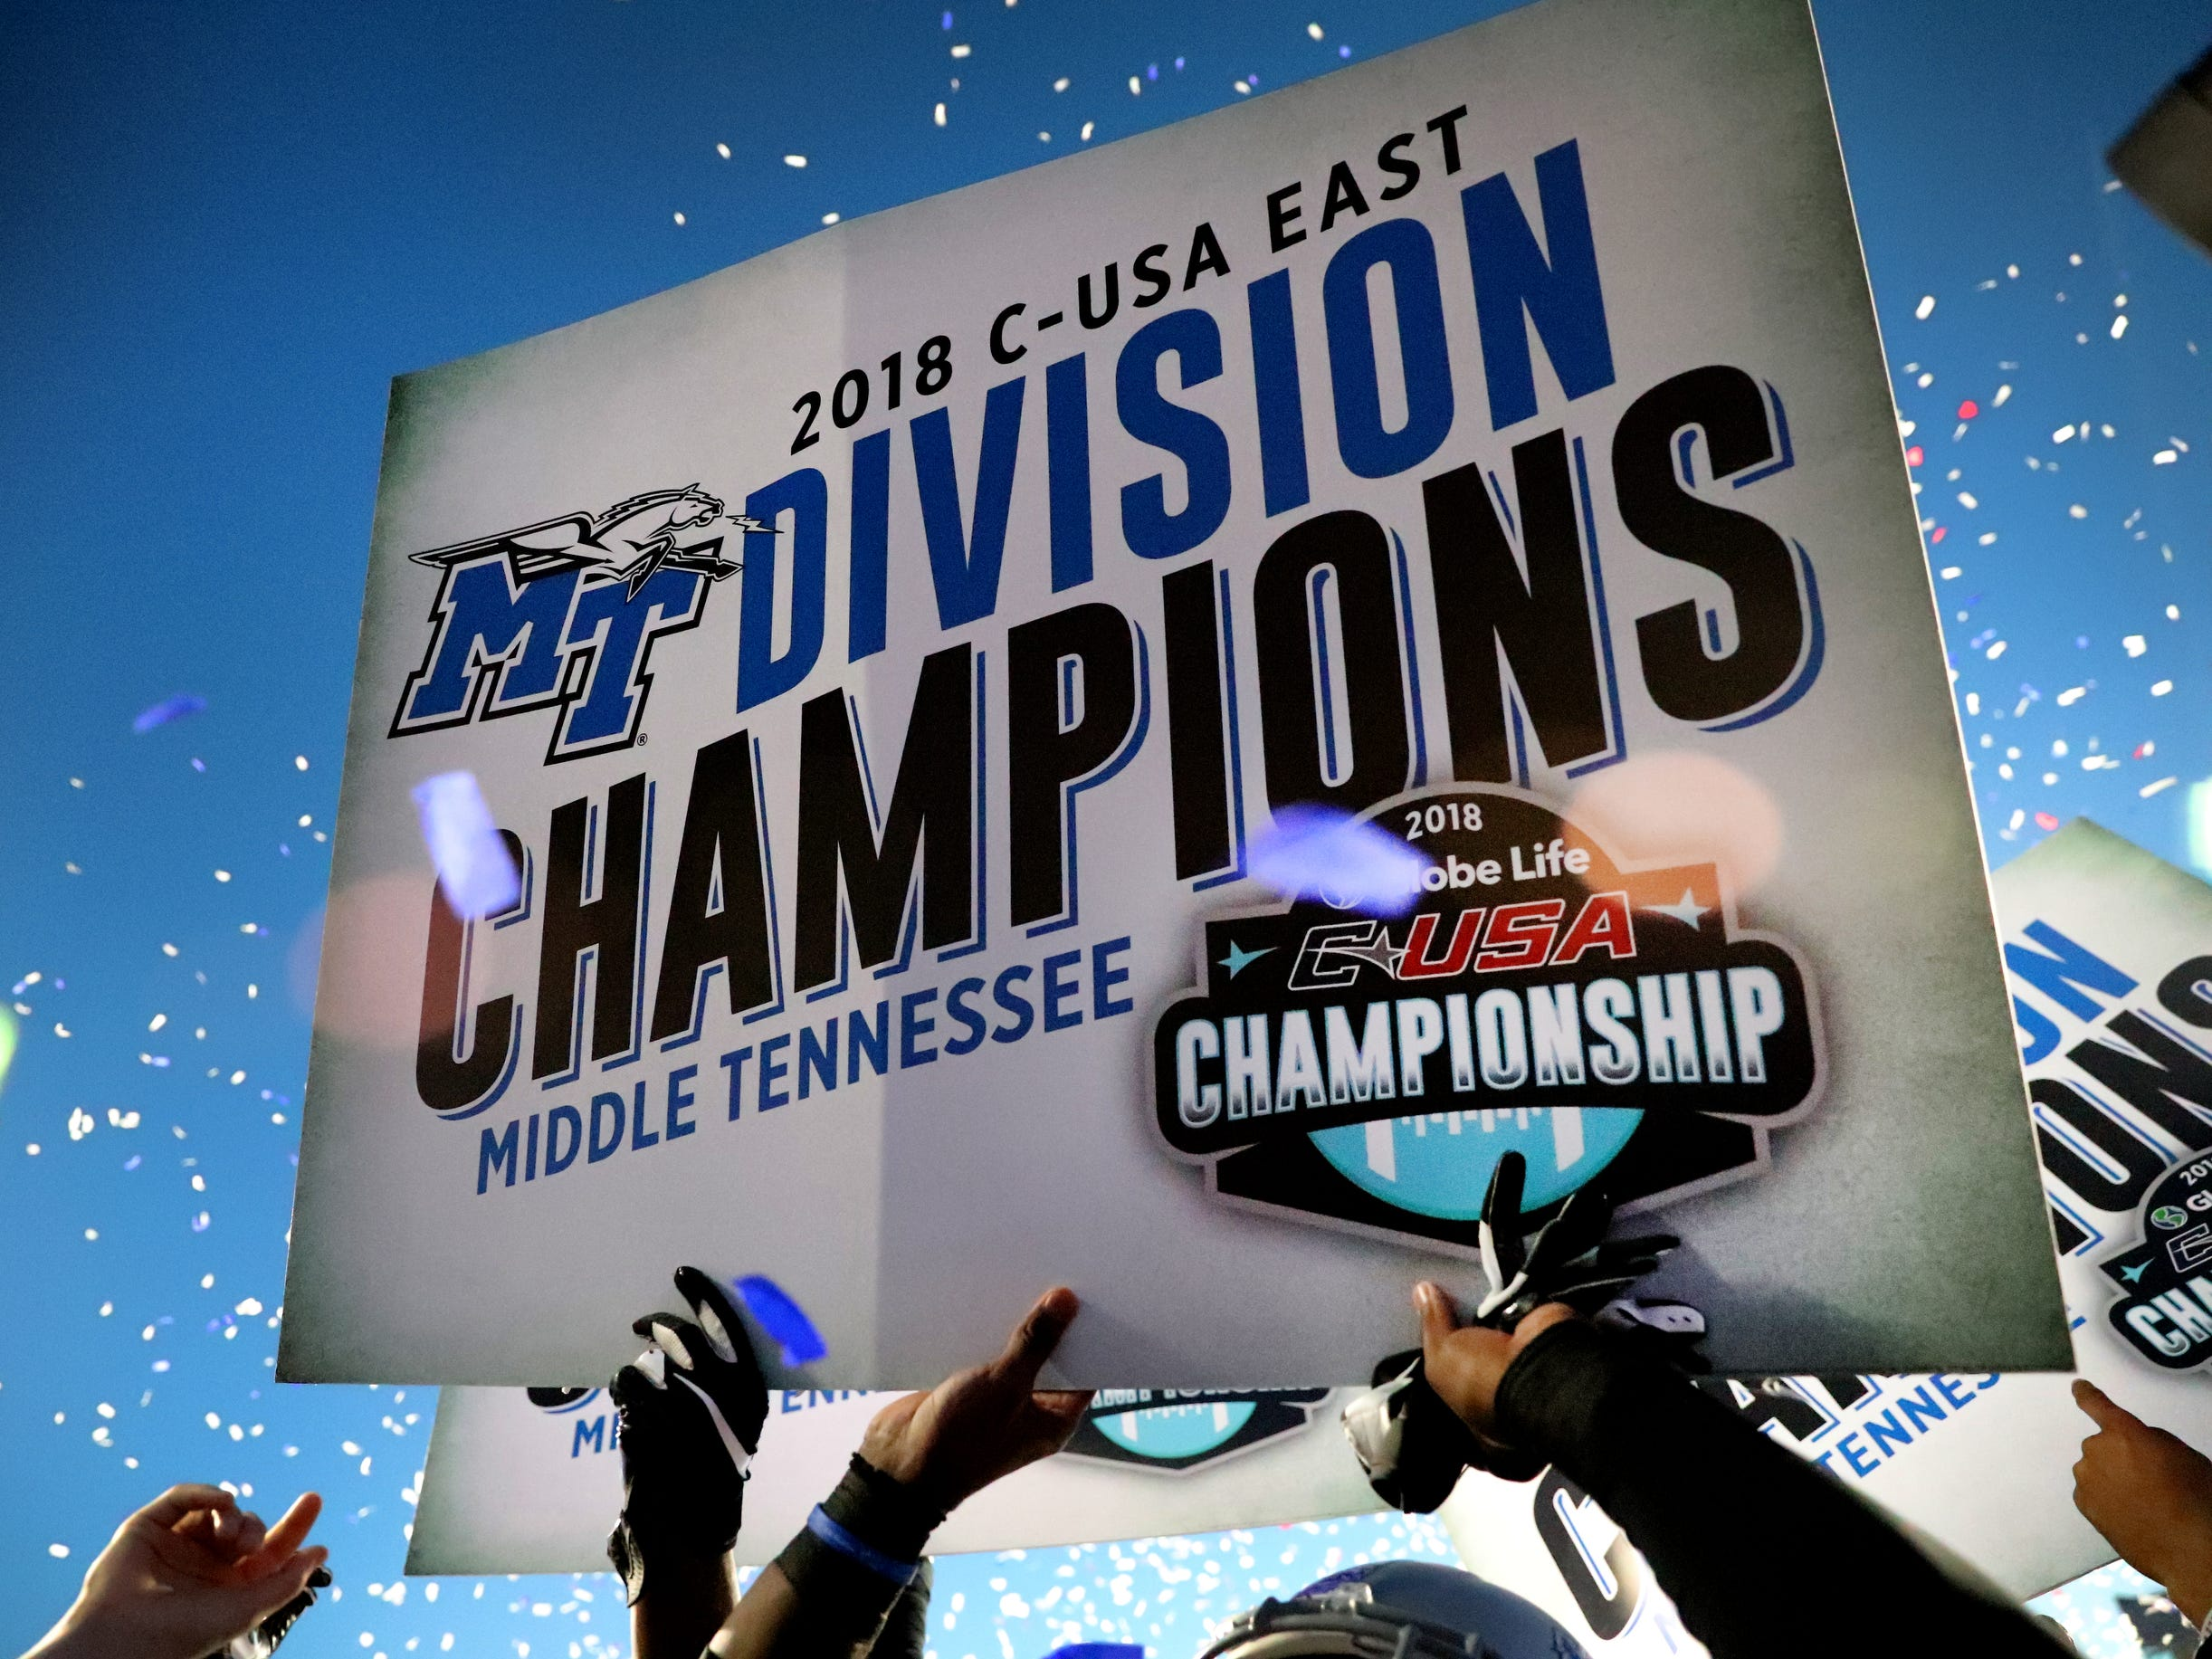 MTSU players celebrate their East Division championship after beating UAB on Saturday, Nov. 24, 2018.